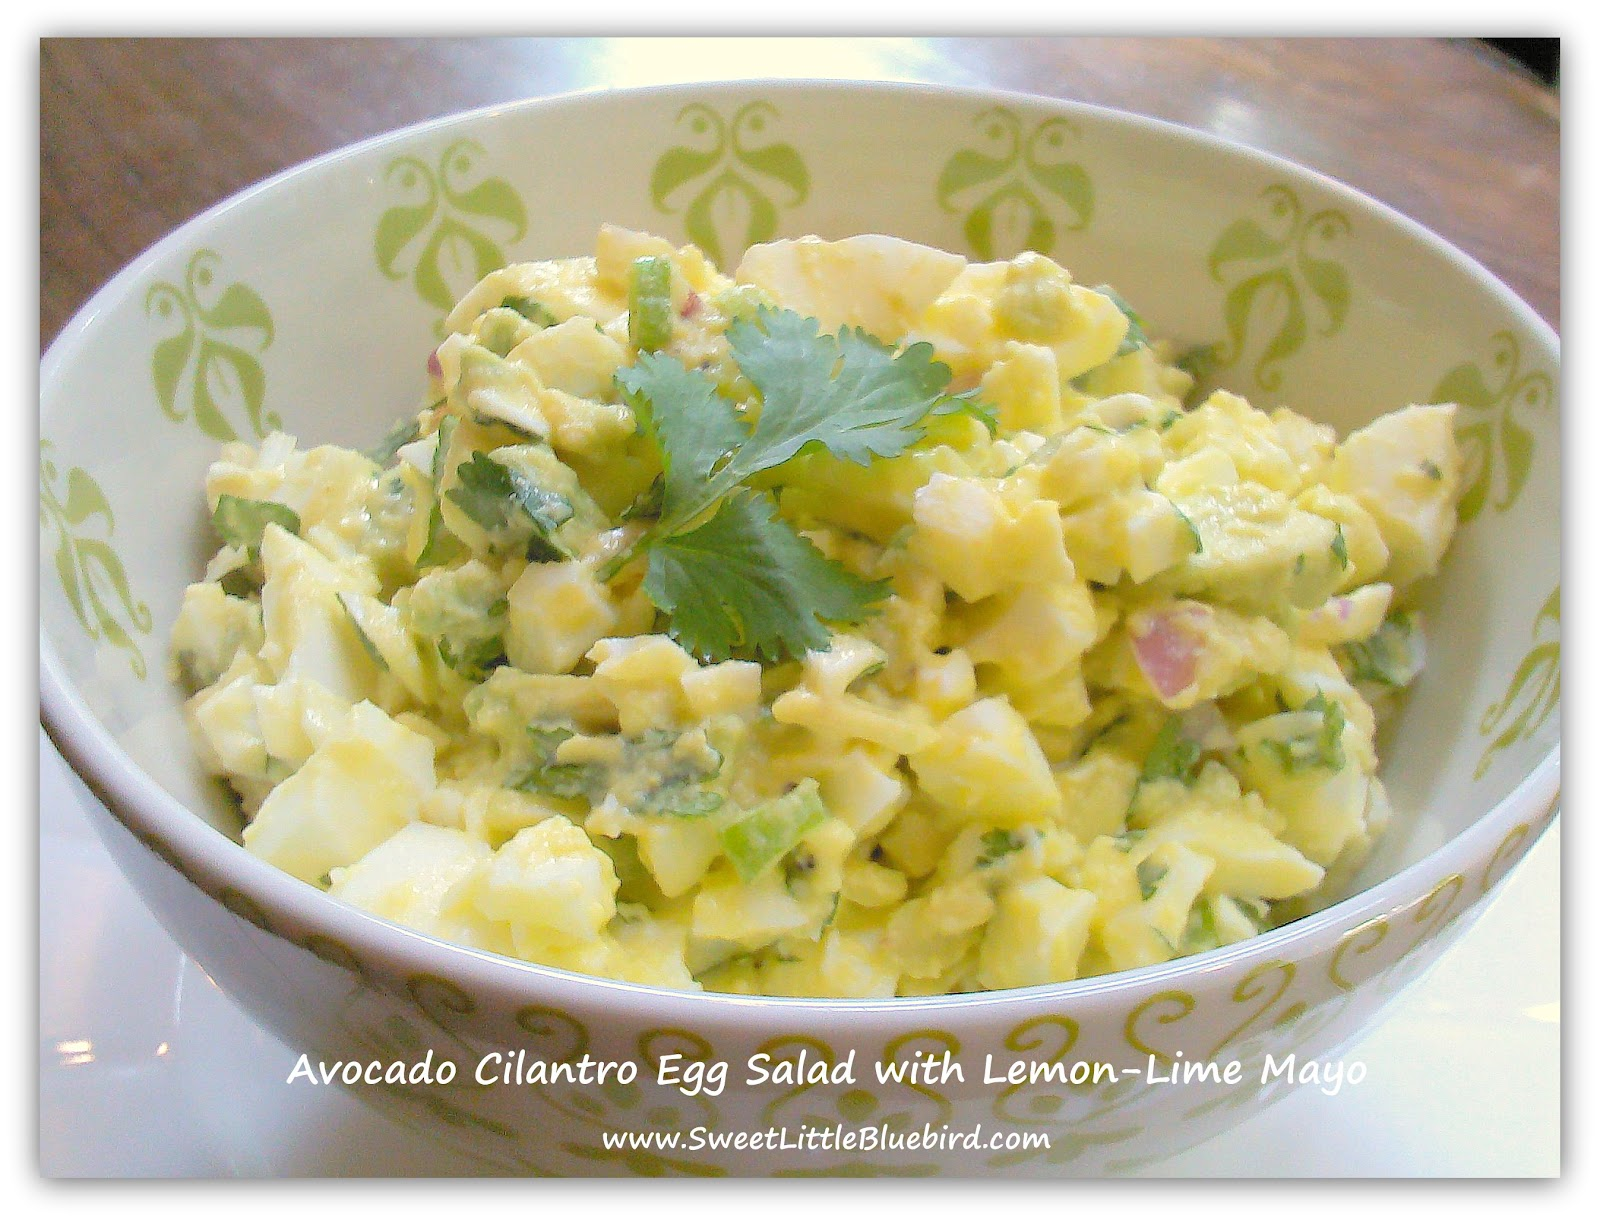 Sweet Little Bluebird: Avocado Cilantro Egg Salad with Lemon-Lime Mayo